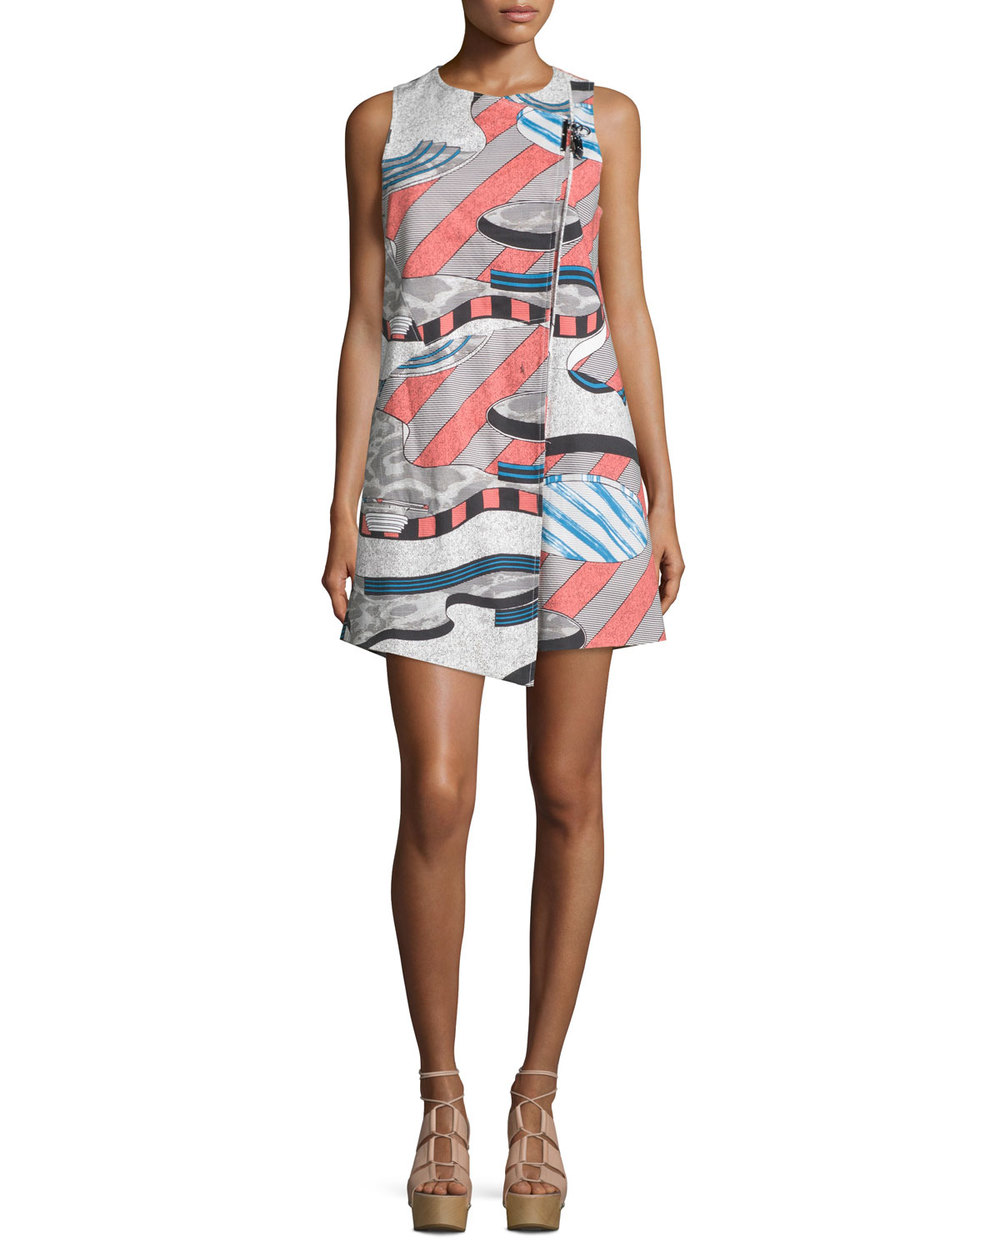 Opening Ceremony Pools Sleeveless Romper. Neiman Marcus. Was: $595 Now: $387.